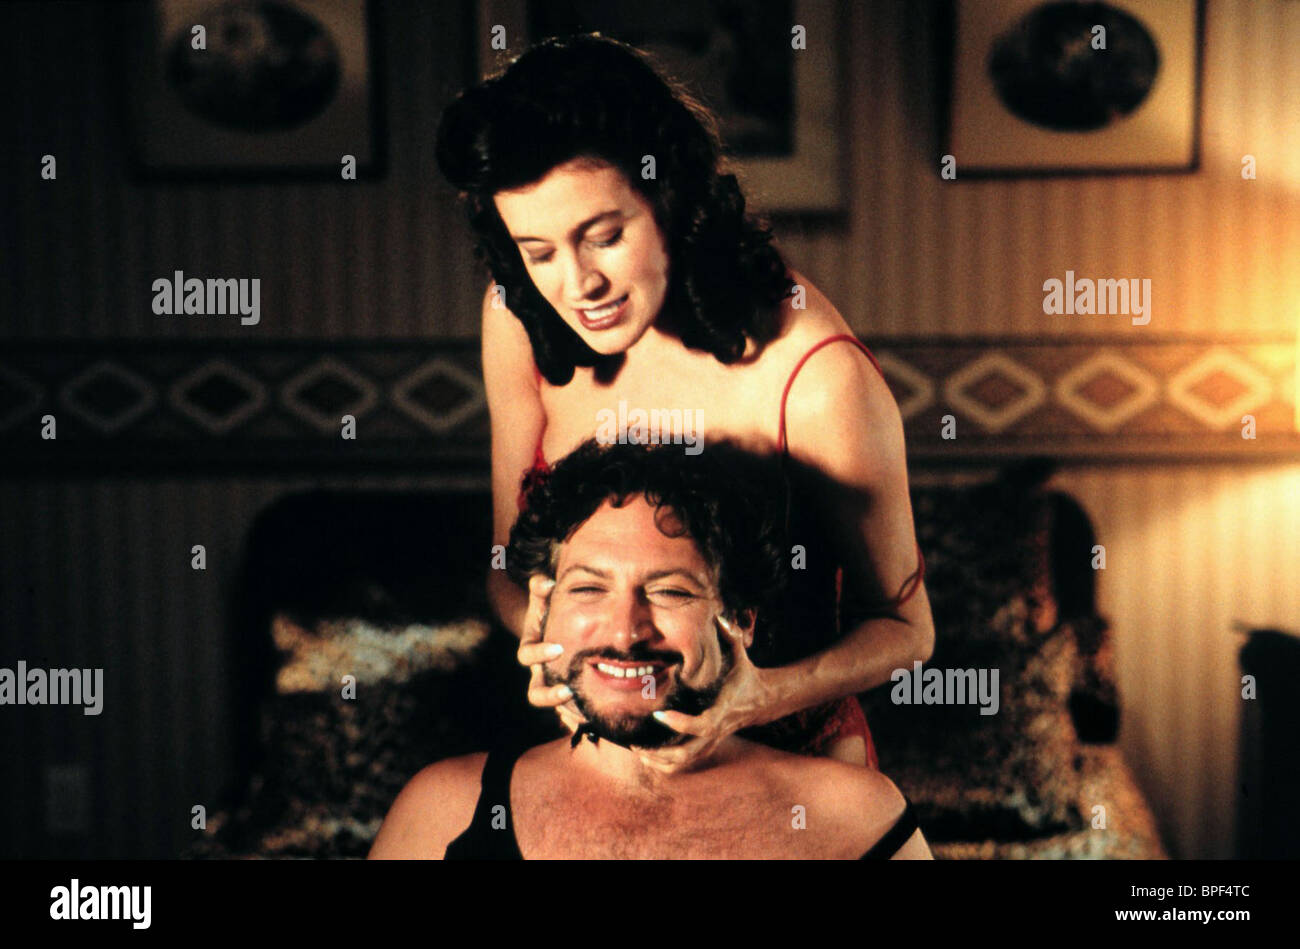 SEAN YOUNG & HARVEY FIERSTEIN DR. JEKYLL AND MS. HYDE ...